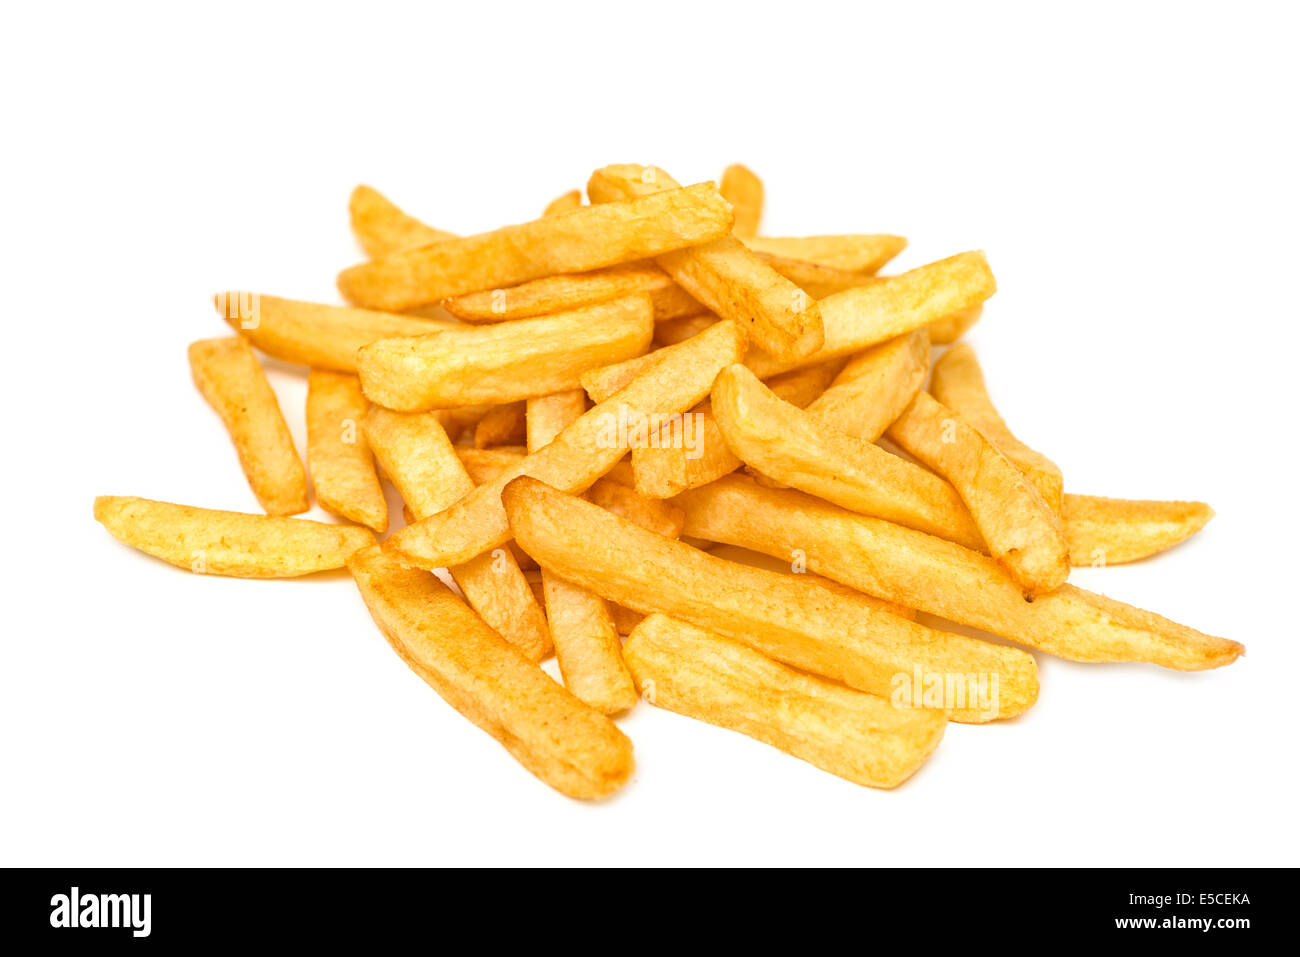 Fries, French Fries - Stock Image